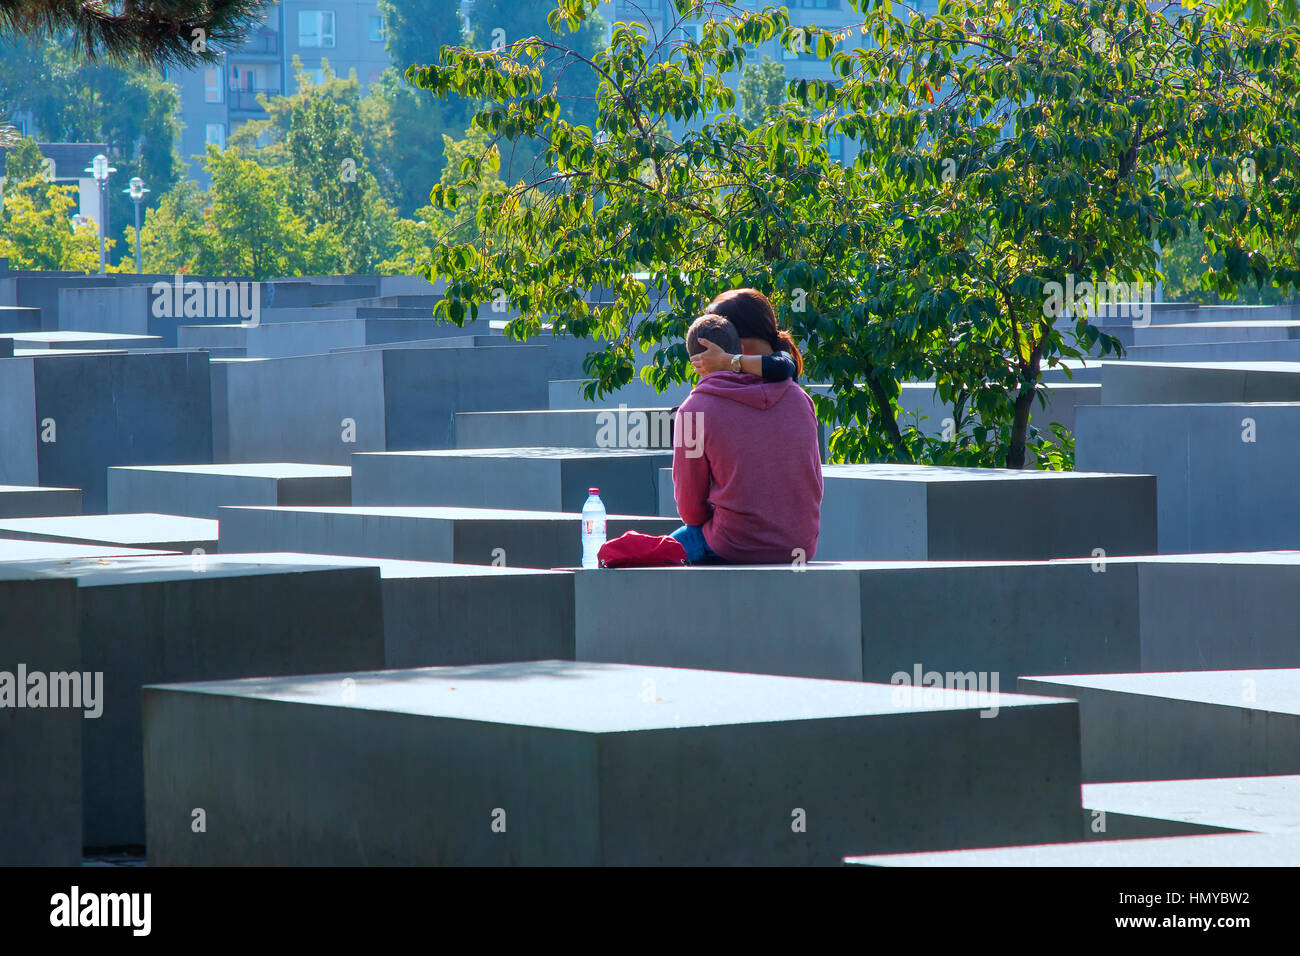 Monument to the Murdered Jews of Europe in Berlin Stock Photo